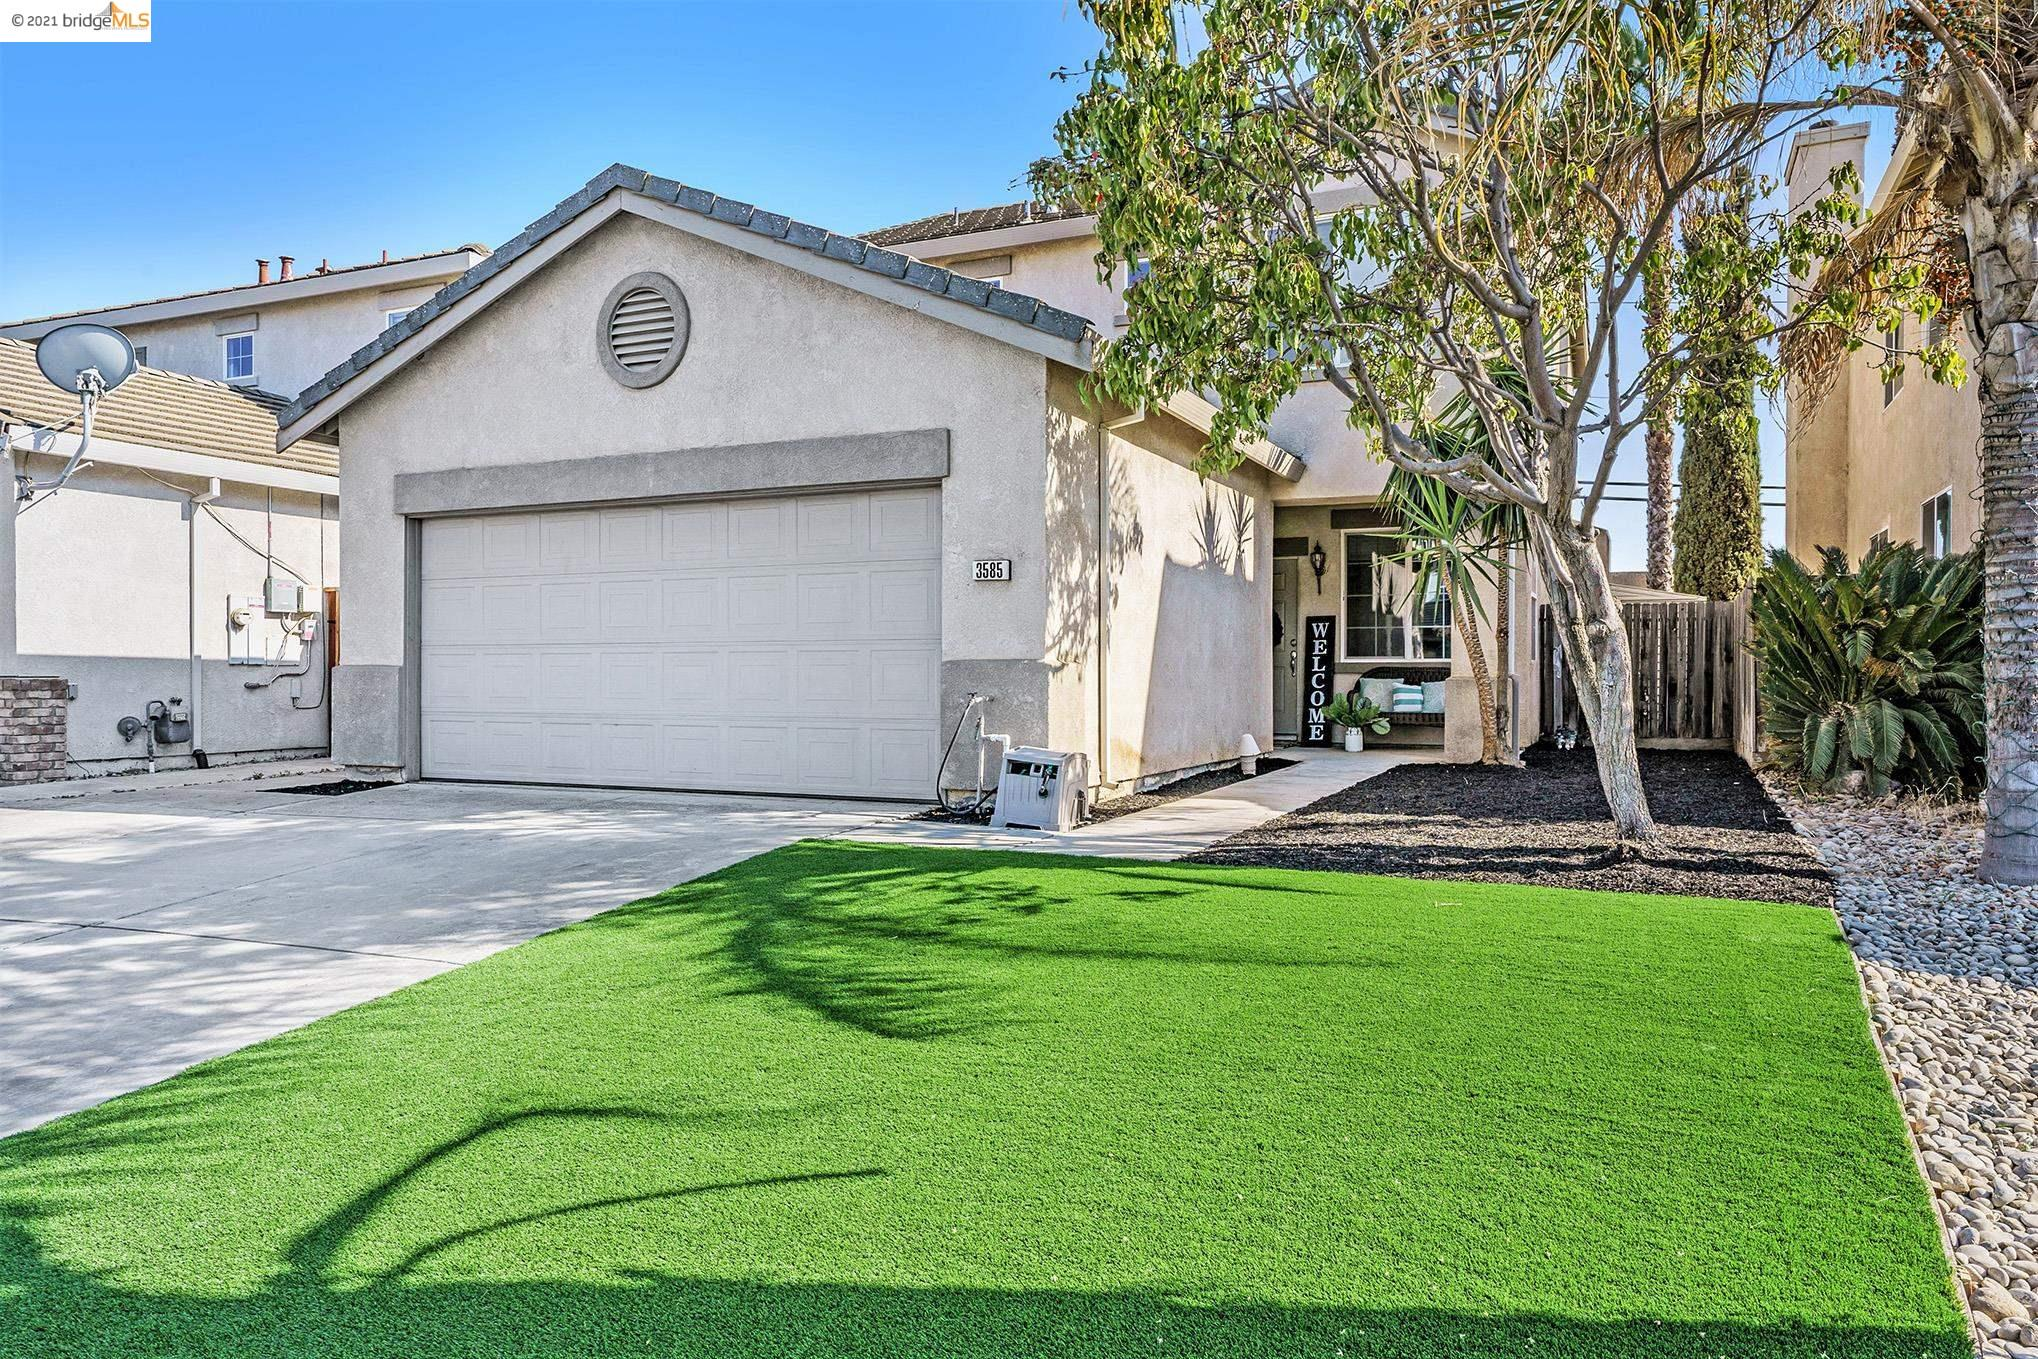 3585 Yacht Dr, DISCOVERY BAY, CA 94505